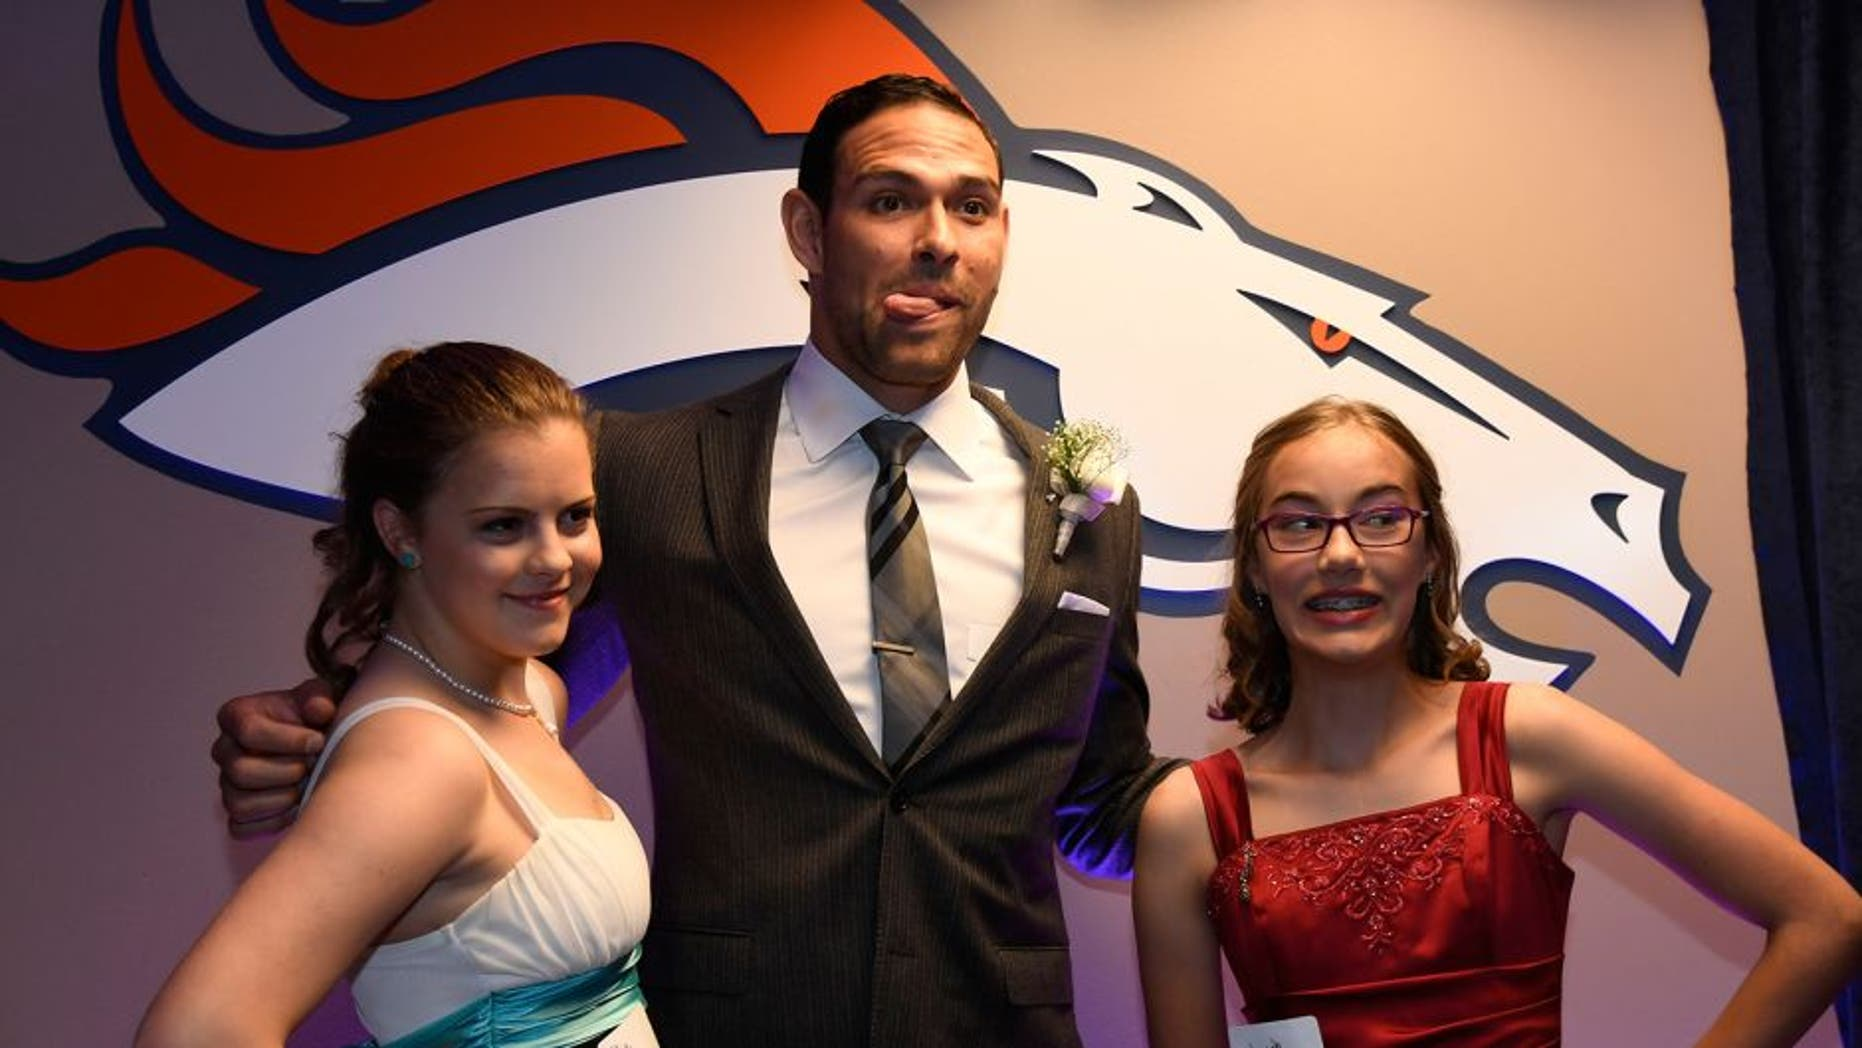 DENVER, CO - MAY 13: Denver Broncos quarterback Mark Sanchez poses for a photo during a Night of Champions prom. Teens got their makeup, hair and nails done before prom night May 13, 2016 at Sports Authority Field at Mile High. Some of the teens missed their own prom due to illness and just couldn't attend. Childrens Hospital hosted the Night of Champions gala. (Photo By John Leyba/The Denver Post via Getty Images)